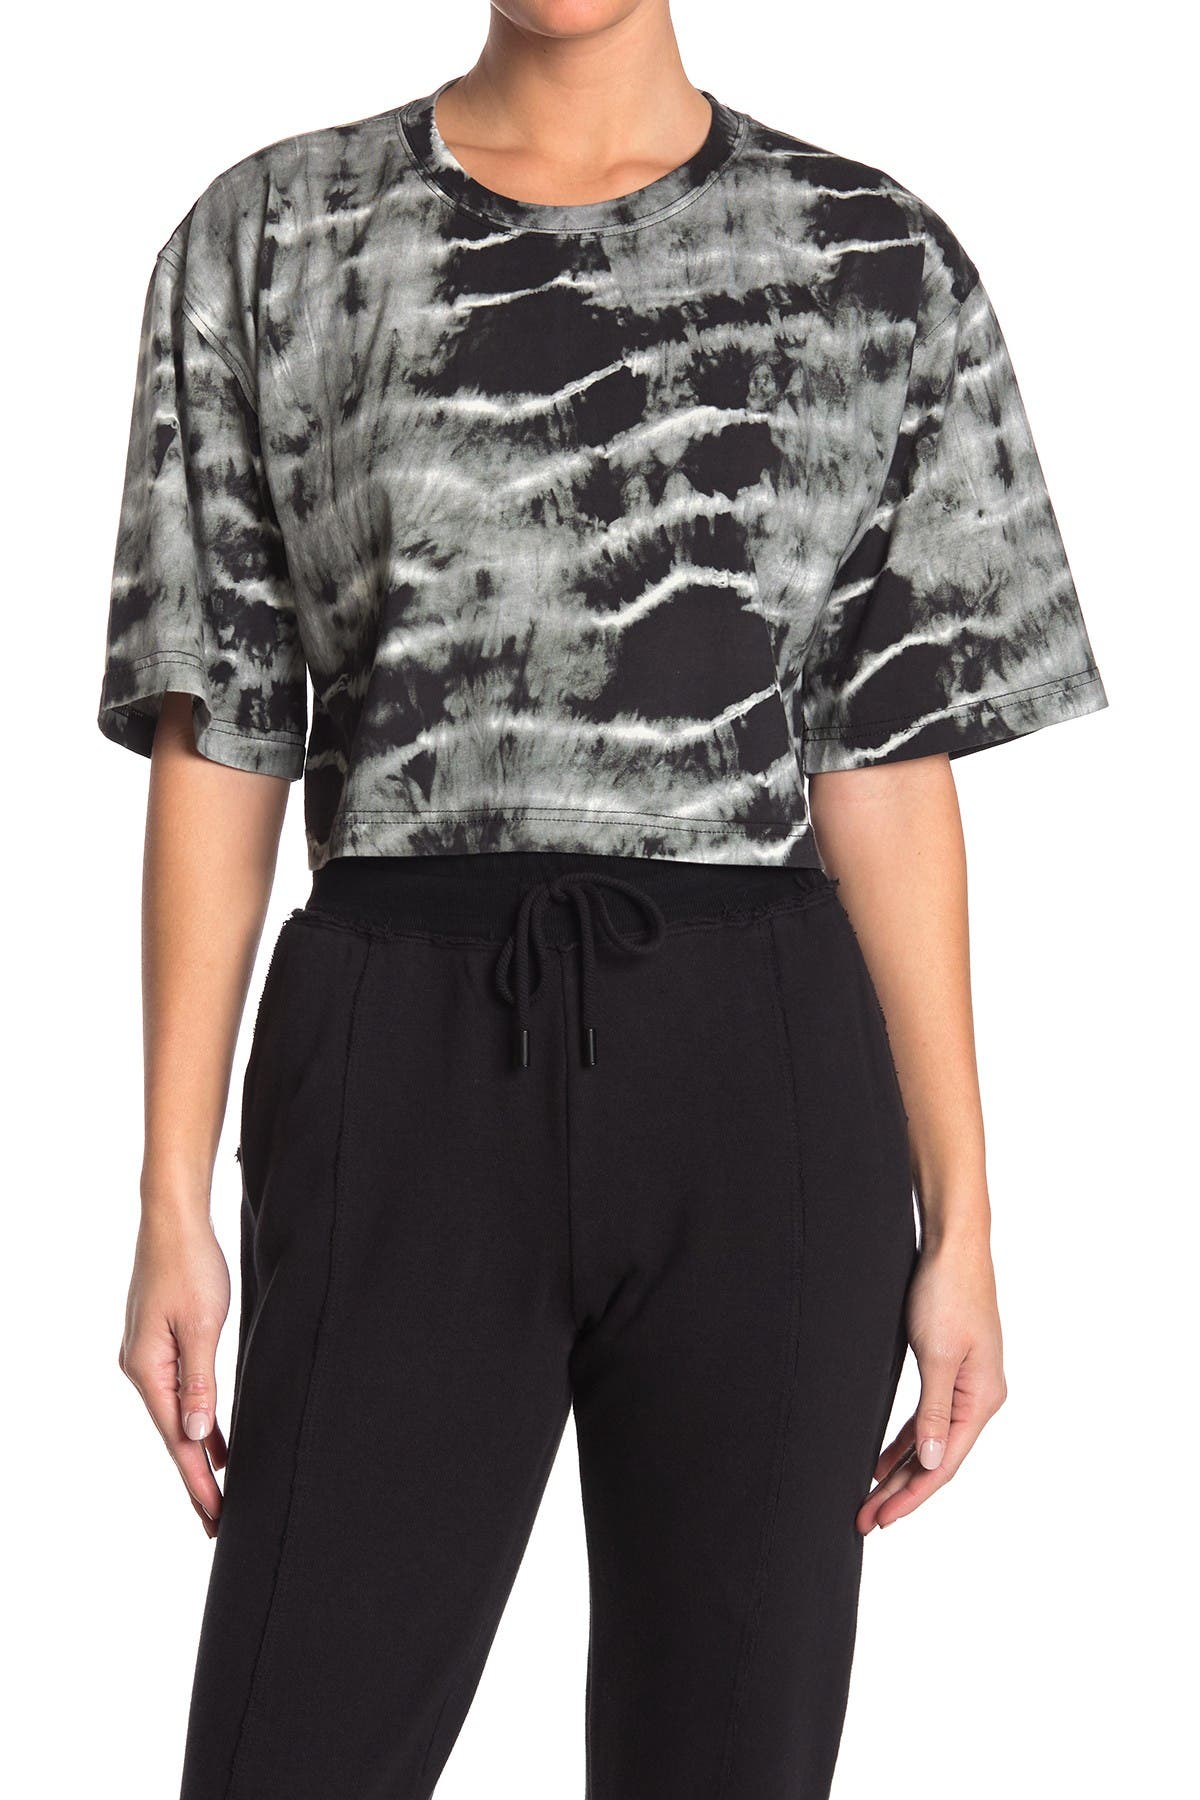 Image of Nicole Miller Embroidery Crop T-Shirt